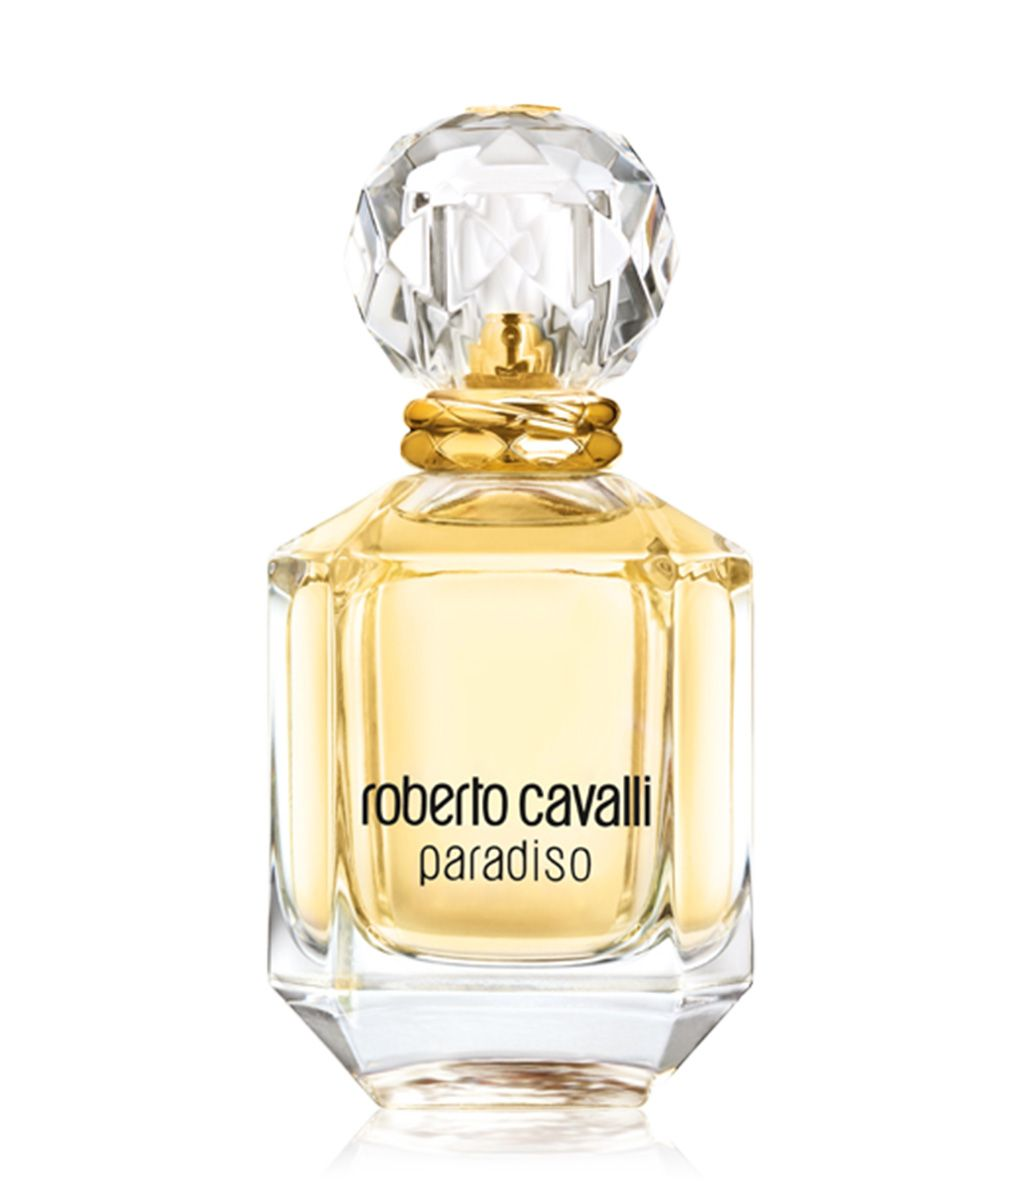 roberto cavalli paradiso eau de parfum f r damen perfumes pinterest parf m beste parf m. Black Bedroom Furniture Sets. Home Design Ideas